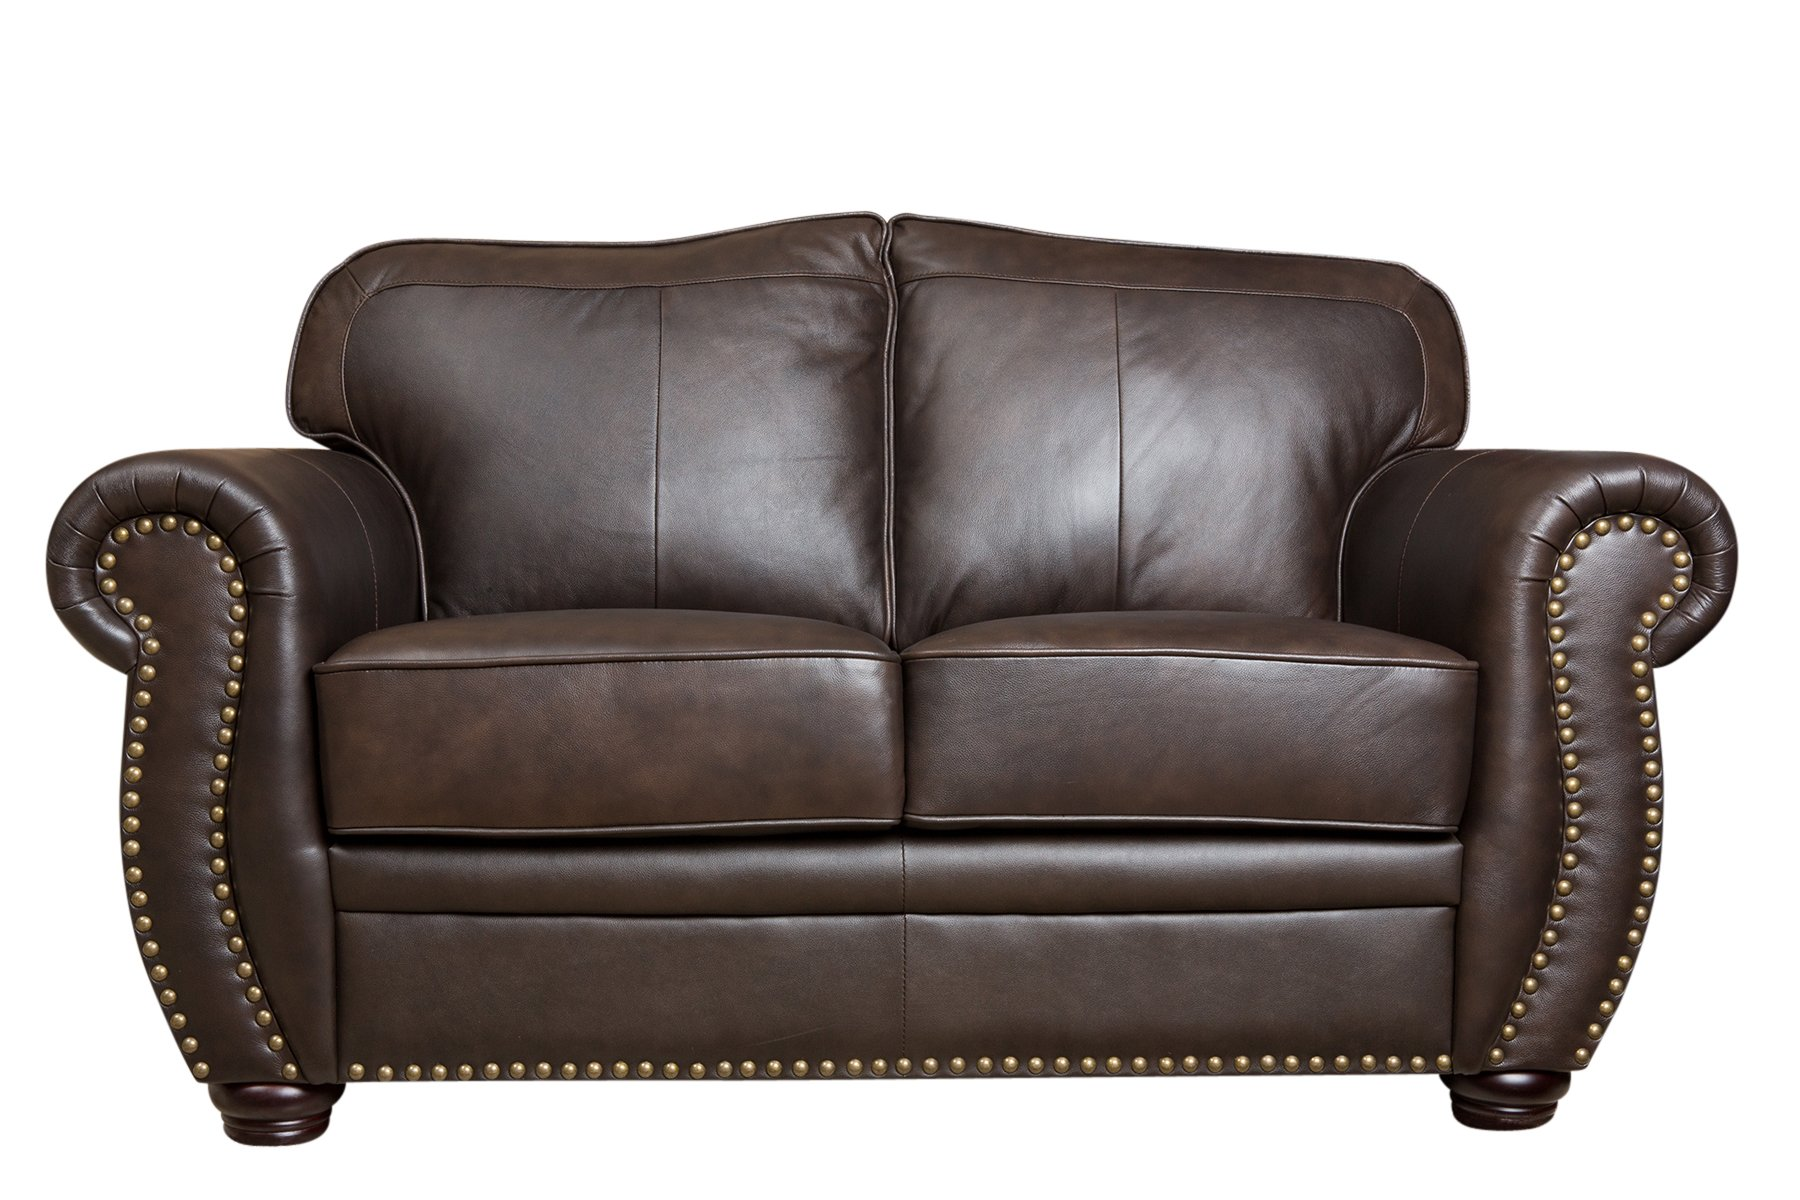 Abbyson® Palaza Leather Loveseat, Brown